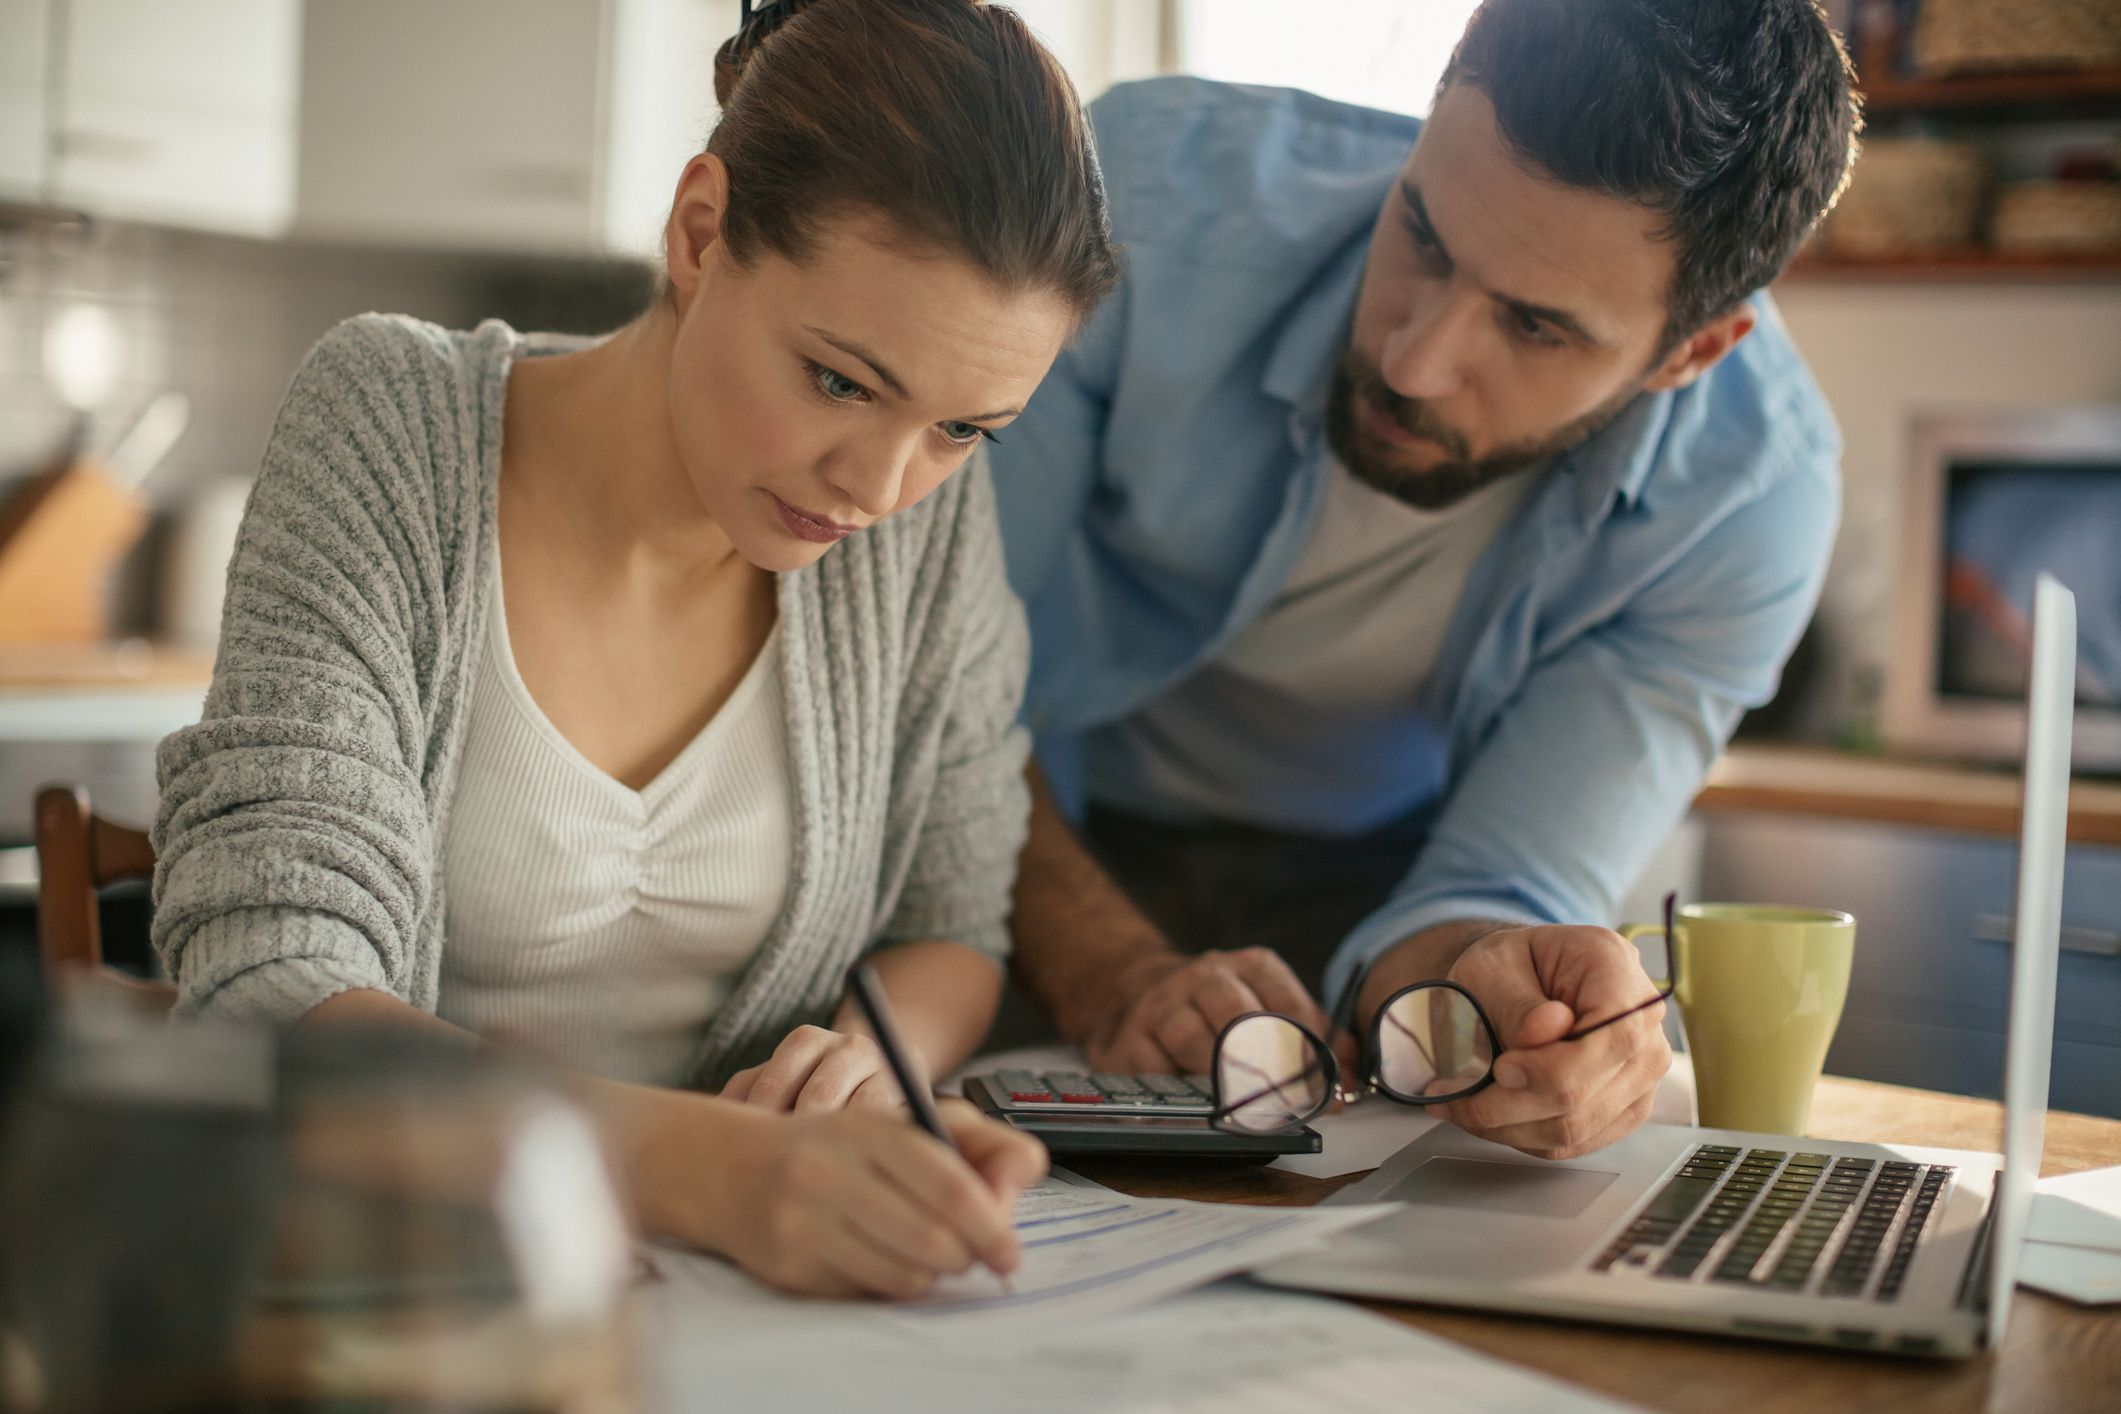 7 Tips To Help Manage Your Finances When Out Of Work